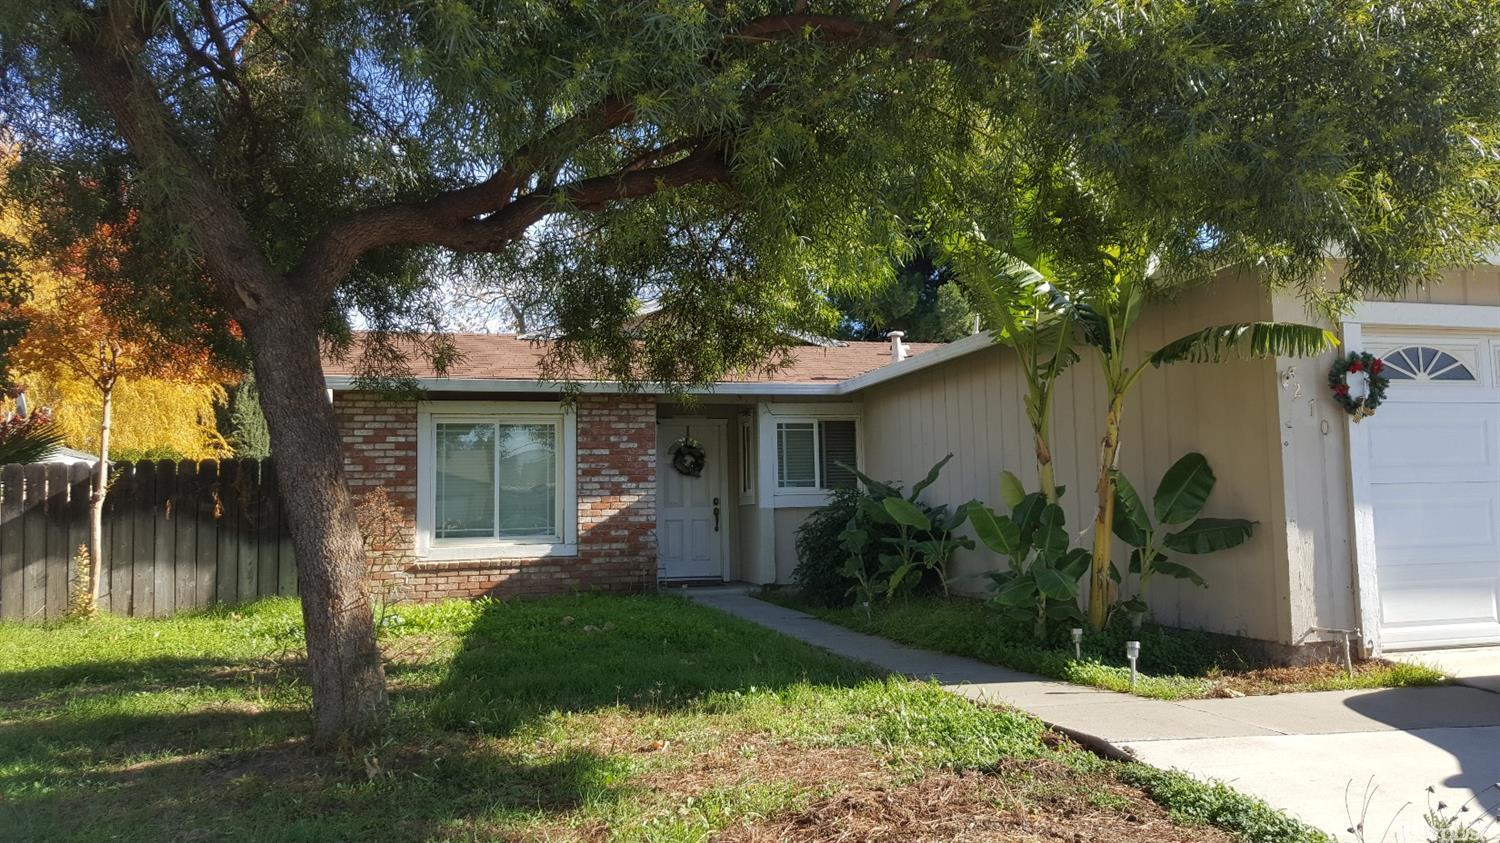 270 S Central Ave, Tracy, CA